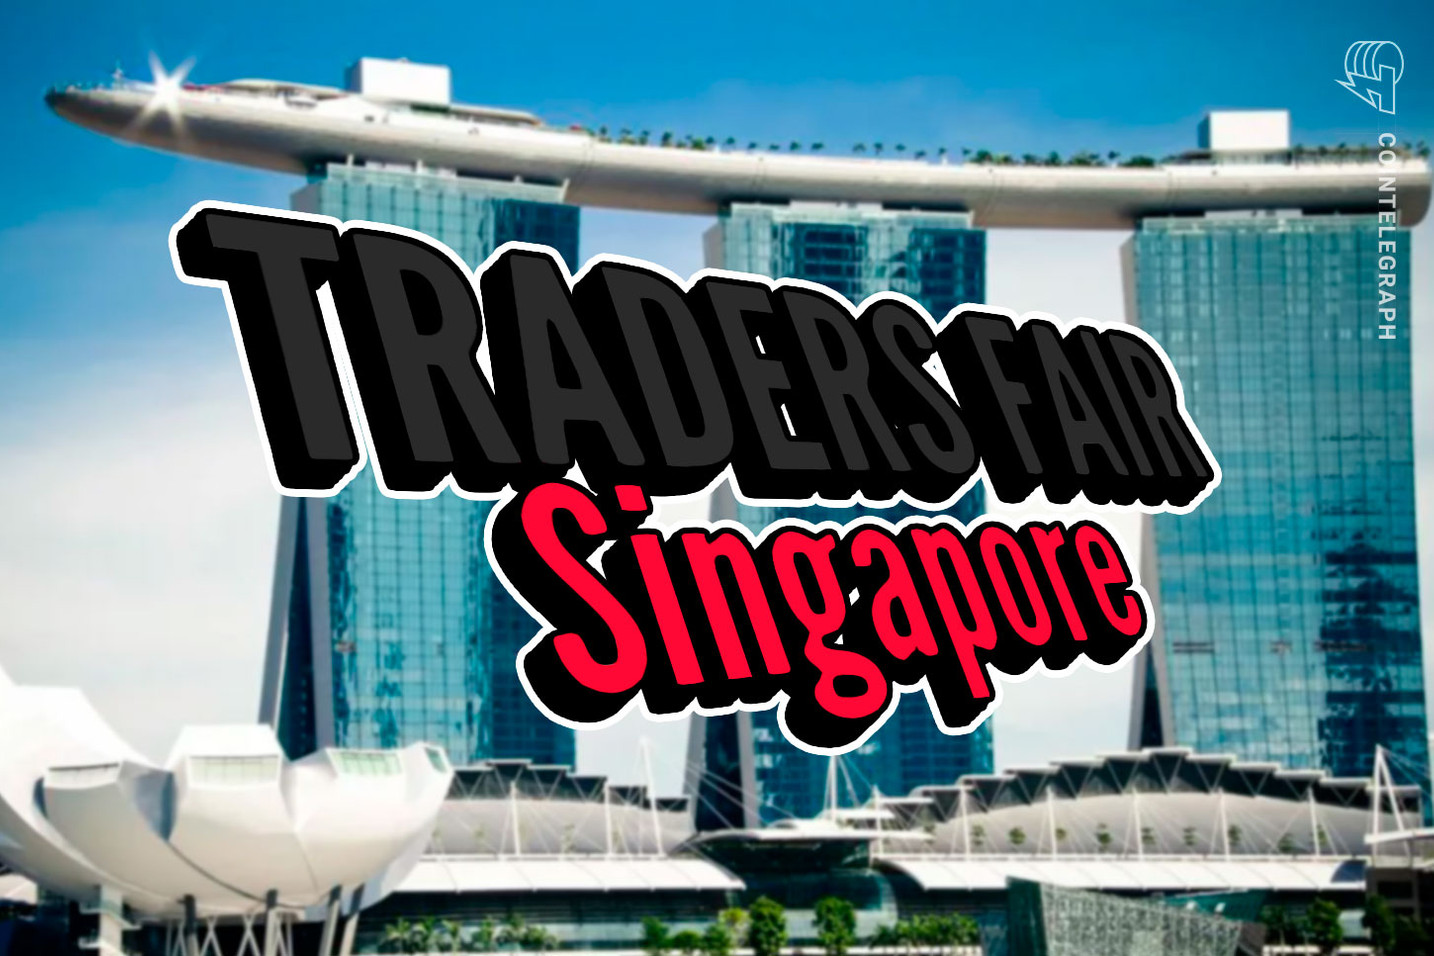 Traders Fair, a Series of Worldwide Financial Events, Is Coming to Singapore Already Second Time